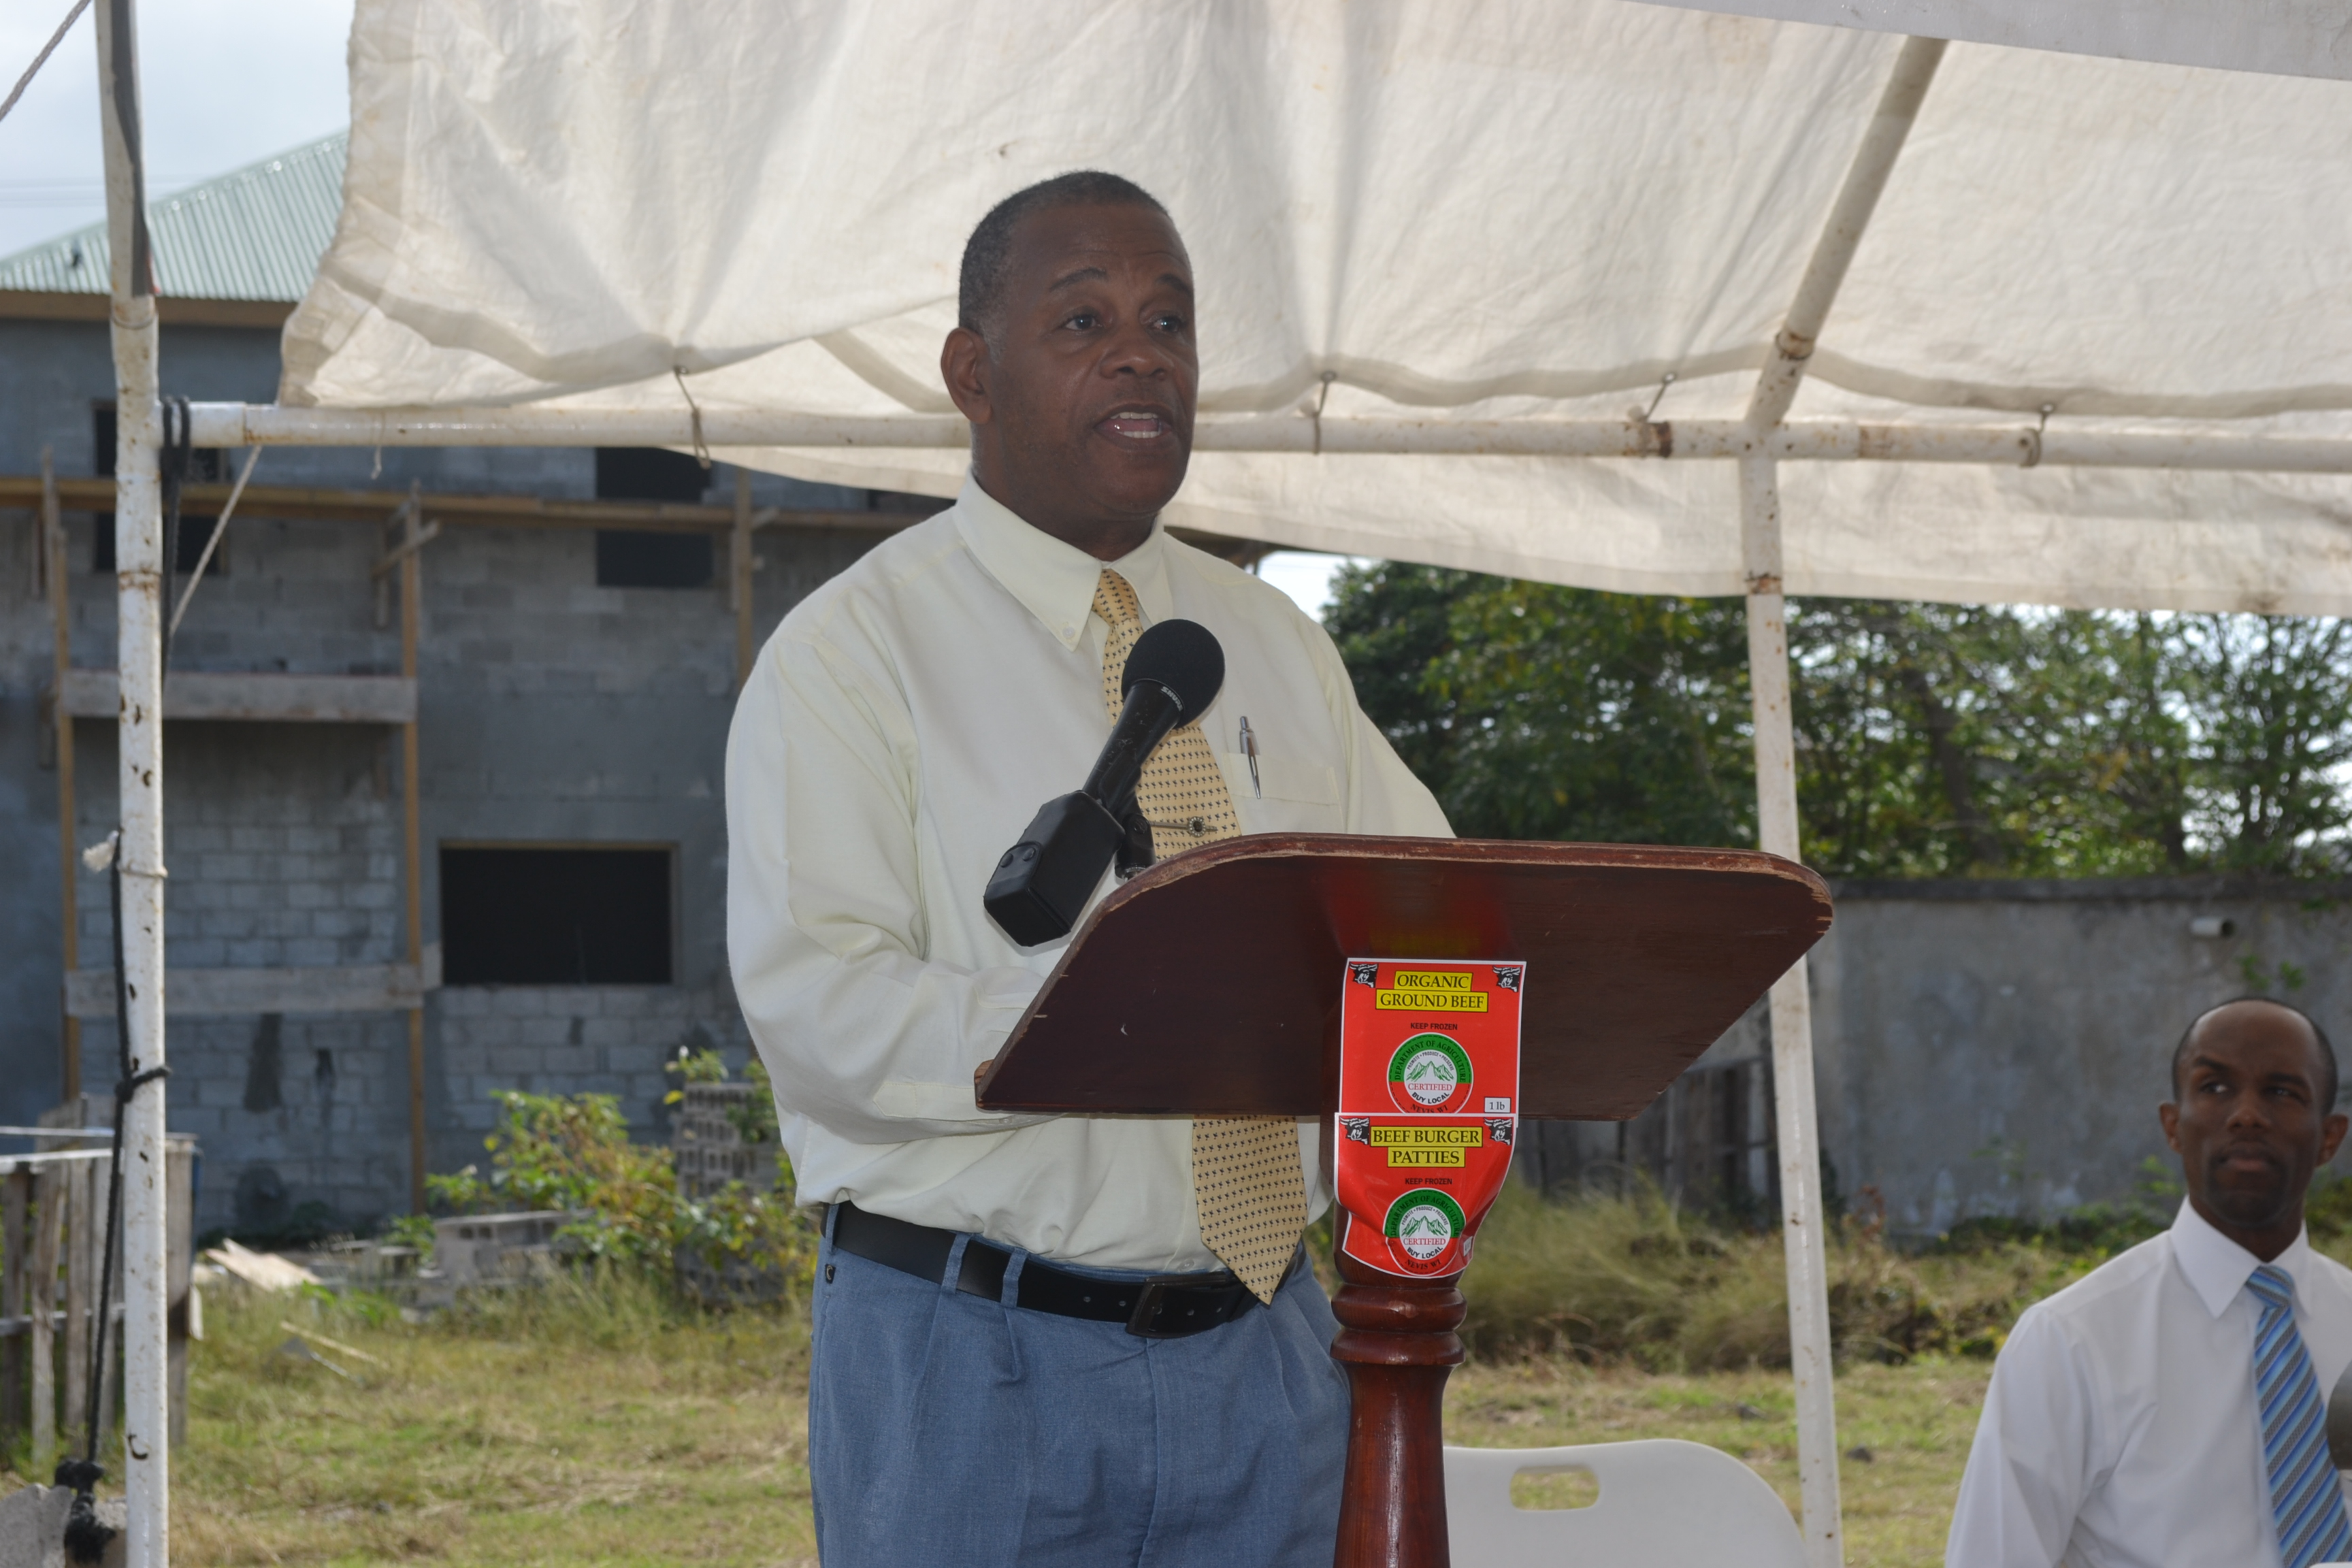 Permanent Secretary in Ministry of Agriculture Mr. Eric Evelyn delivering Welcome and Opening remarks at the Ground Breaking Ceremony for the extension of the Abattoir Division on the Abattoir Division Grounds on January 26 2016